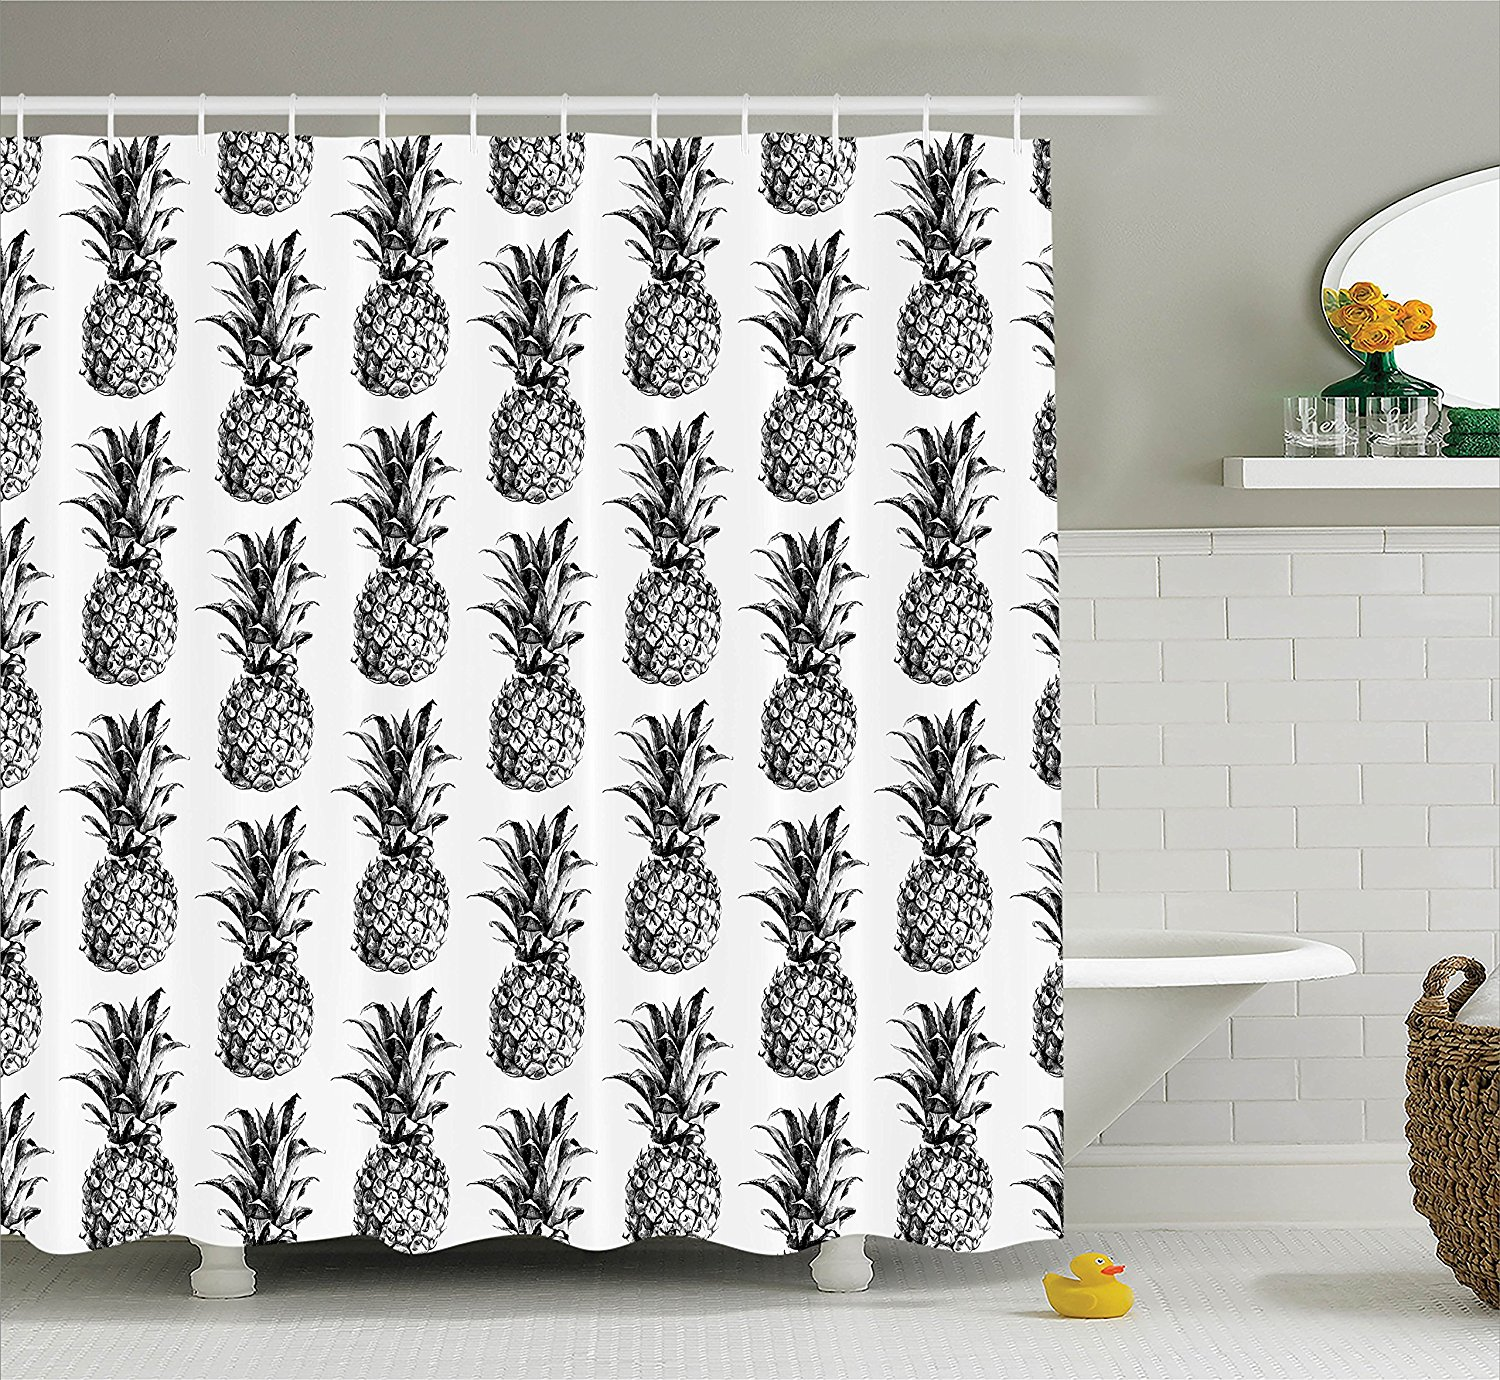 memory home pineapple shower curtain vintage style pineapple fruit pattern bathroom accessories black gray white